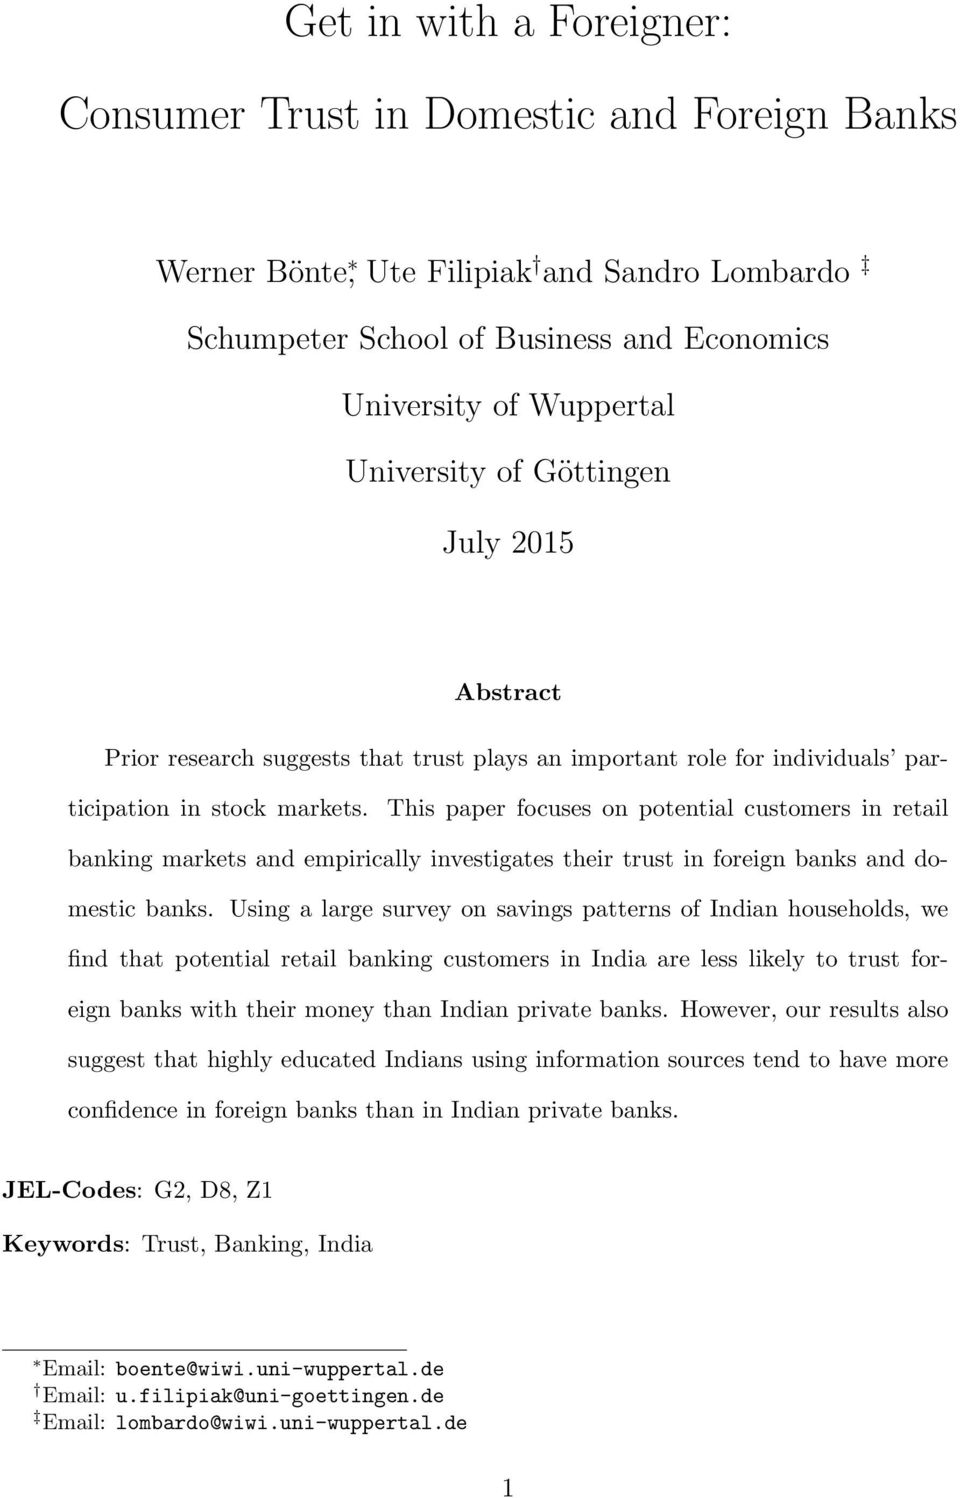 This paper focuses on potential customers in retail banking markets and empirically investigates their trust in foreign banks and domestic banks.